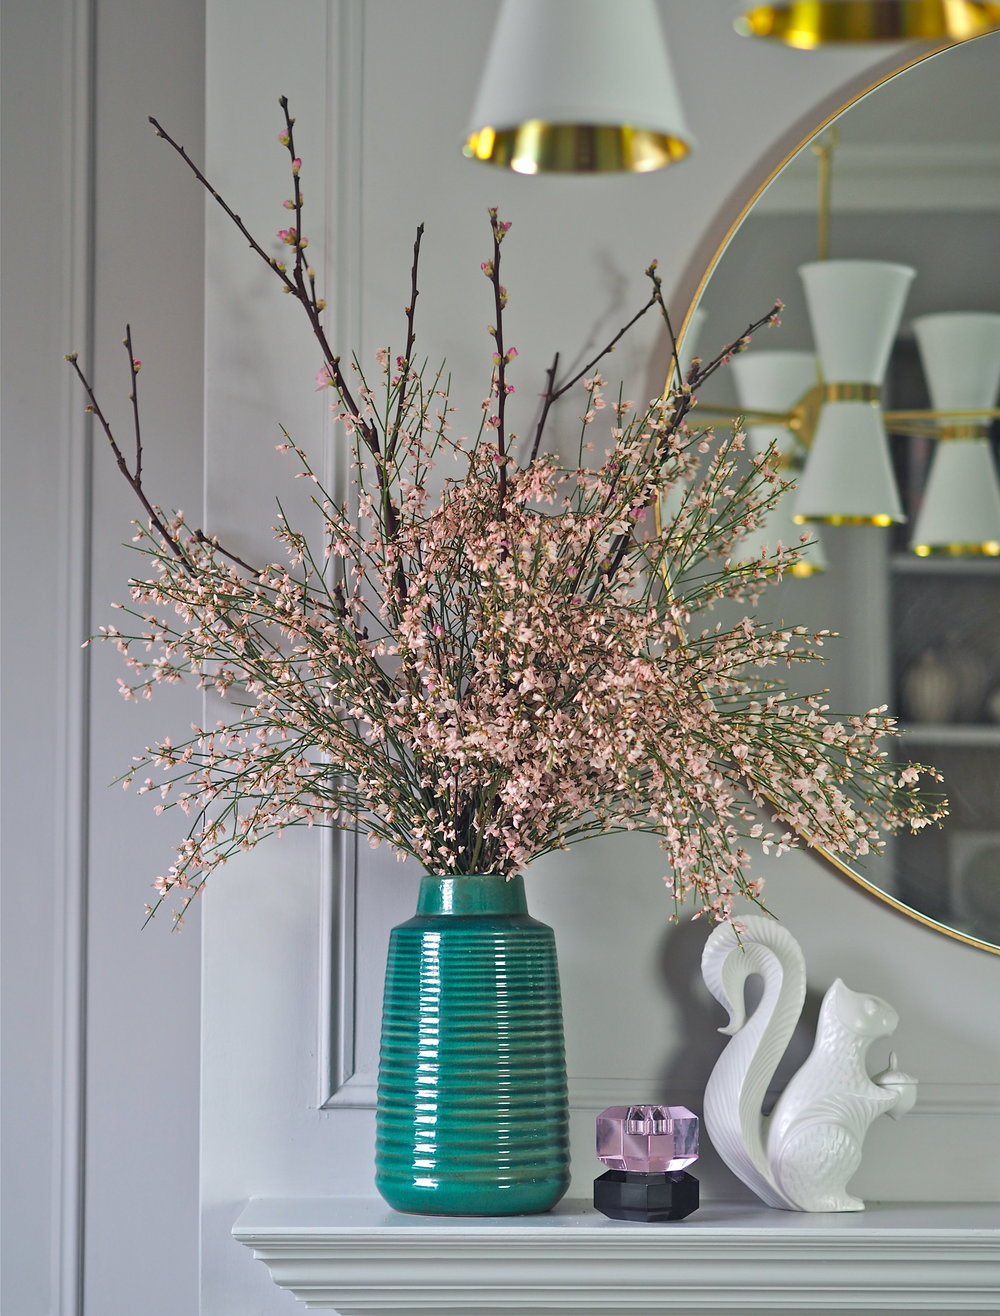 grand illusions spring decor ideas